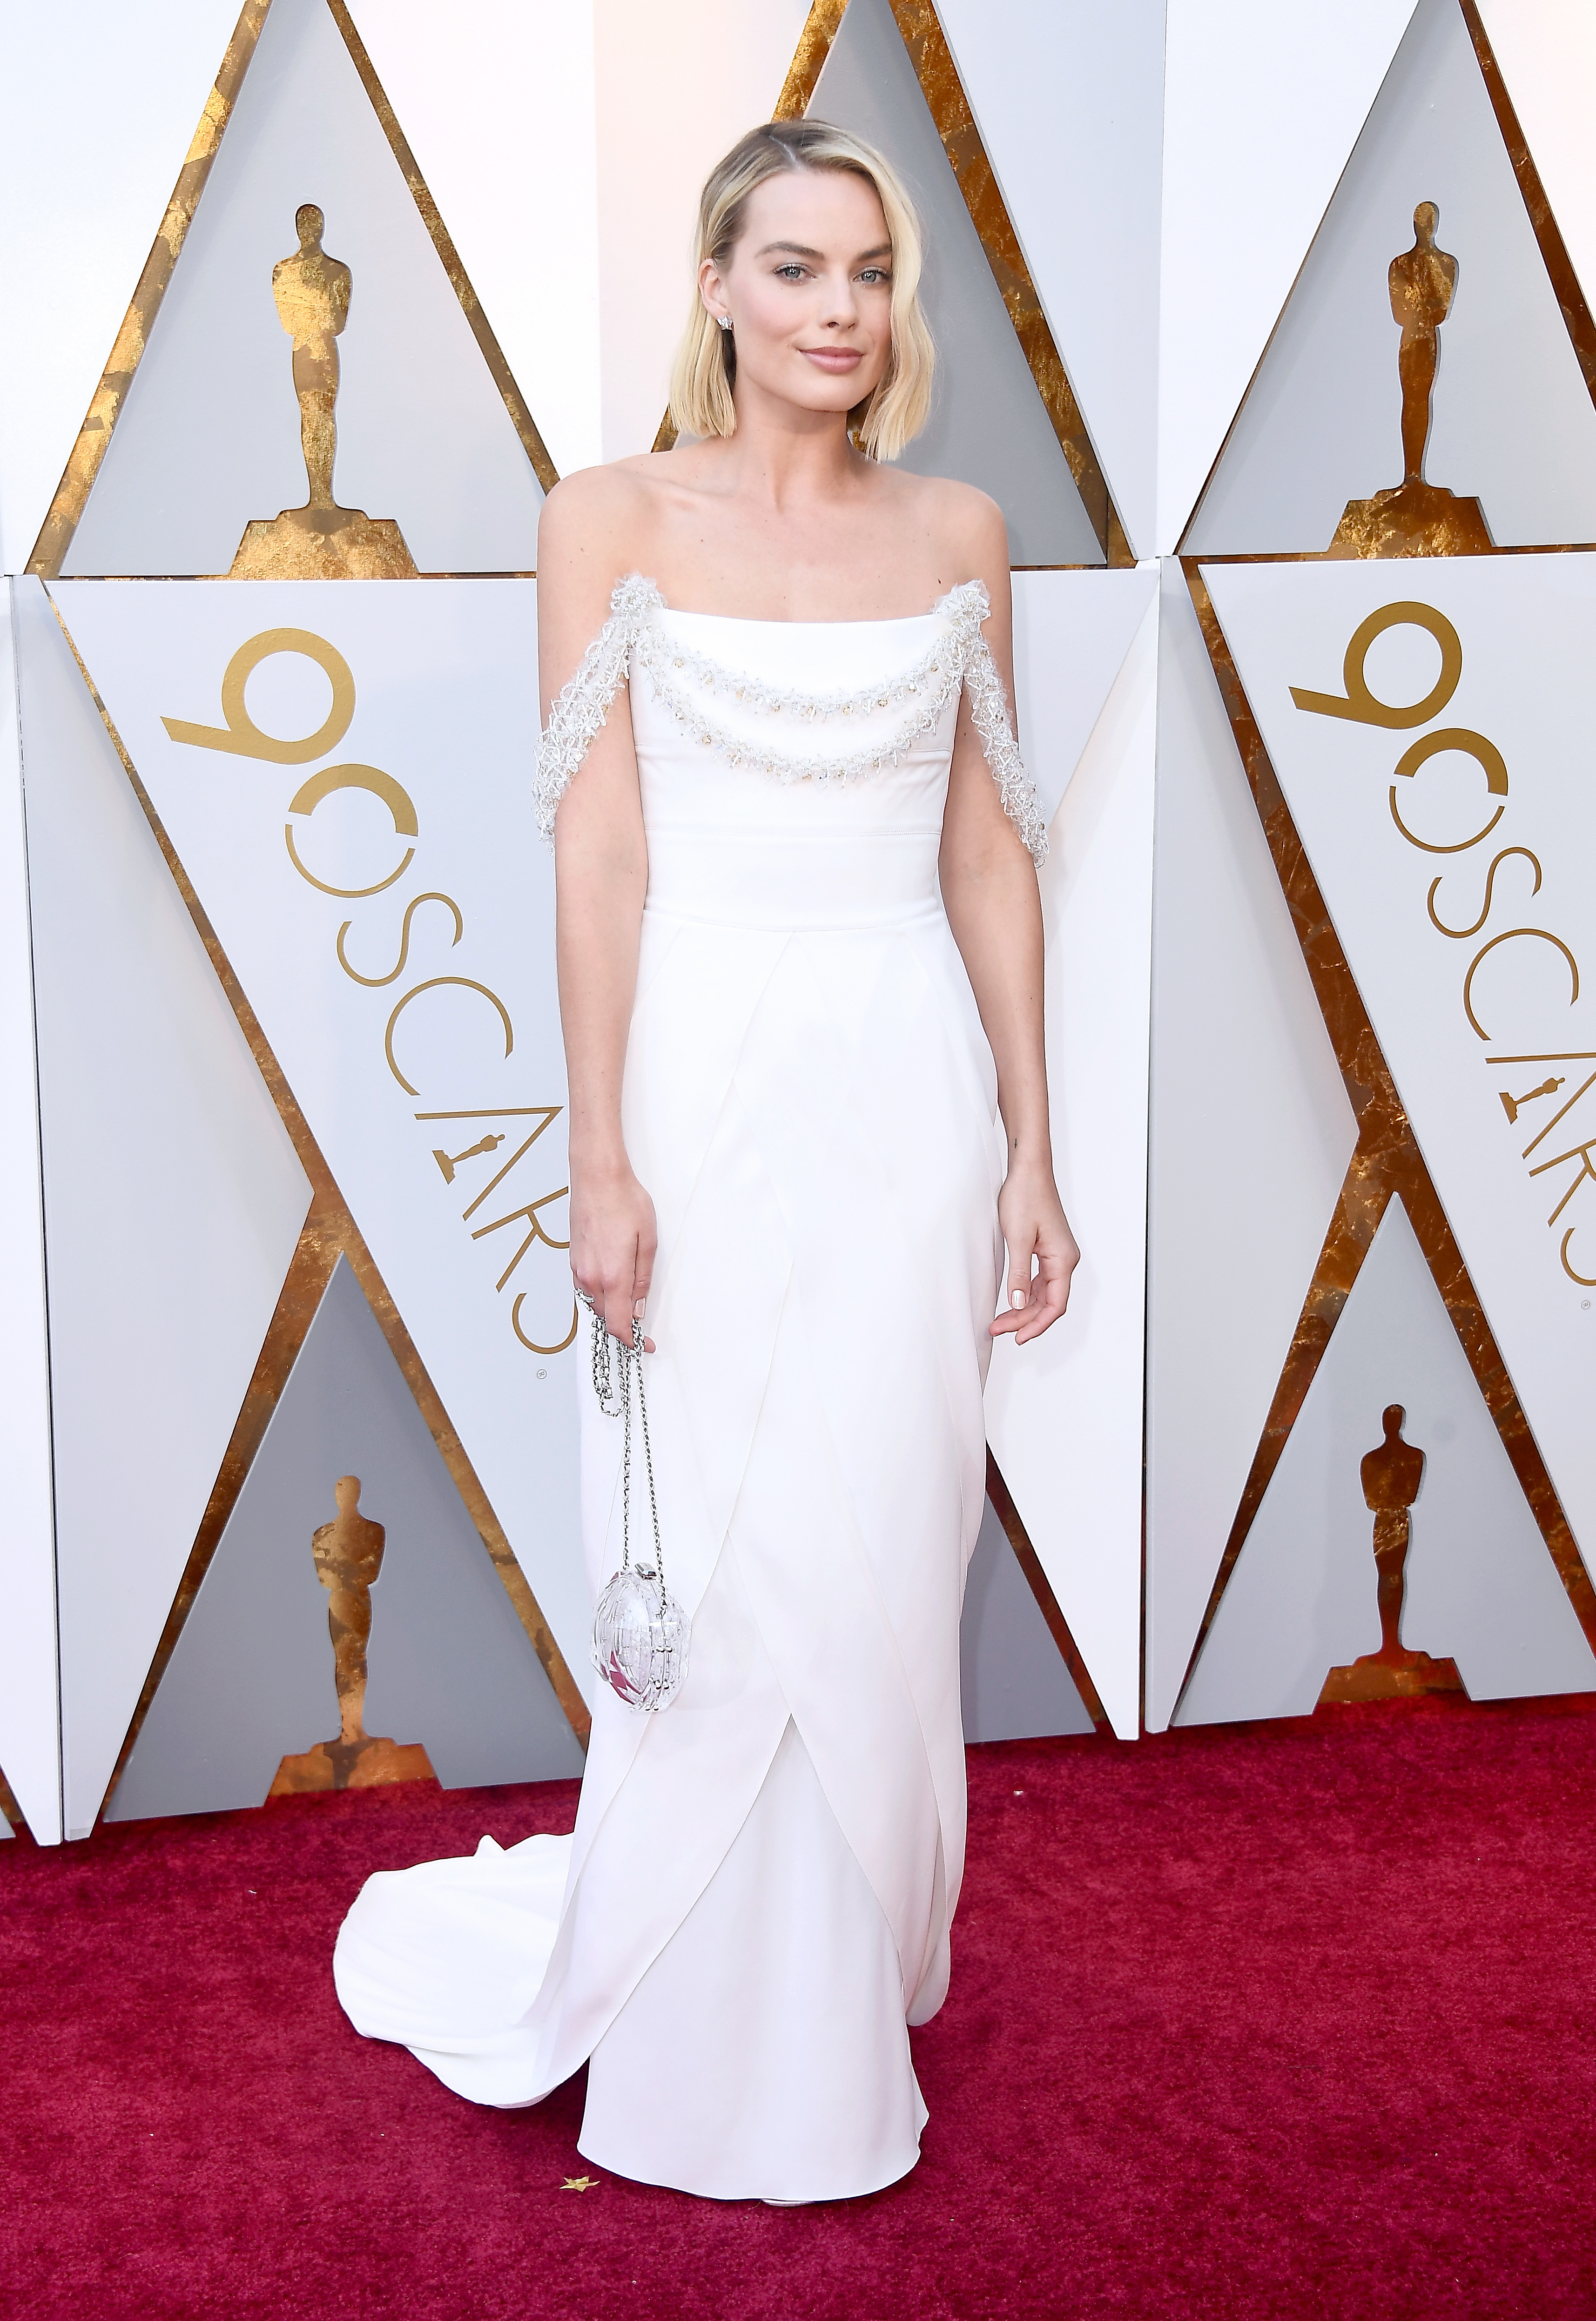 HOLLYWOOD, CA - MARCH 04: Margot Robbie attends the 90th Annual Academy Awards at Hollywood & Highland Center on March 4, 2018 in Hollywood, California.  (Photo by Frazer Harrison/Getty Images)